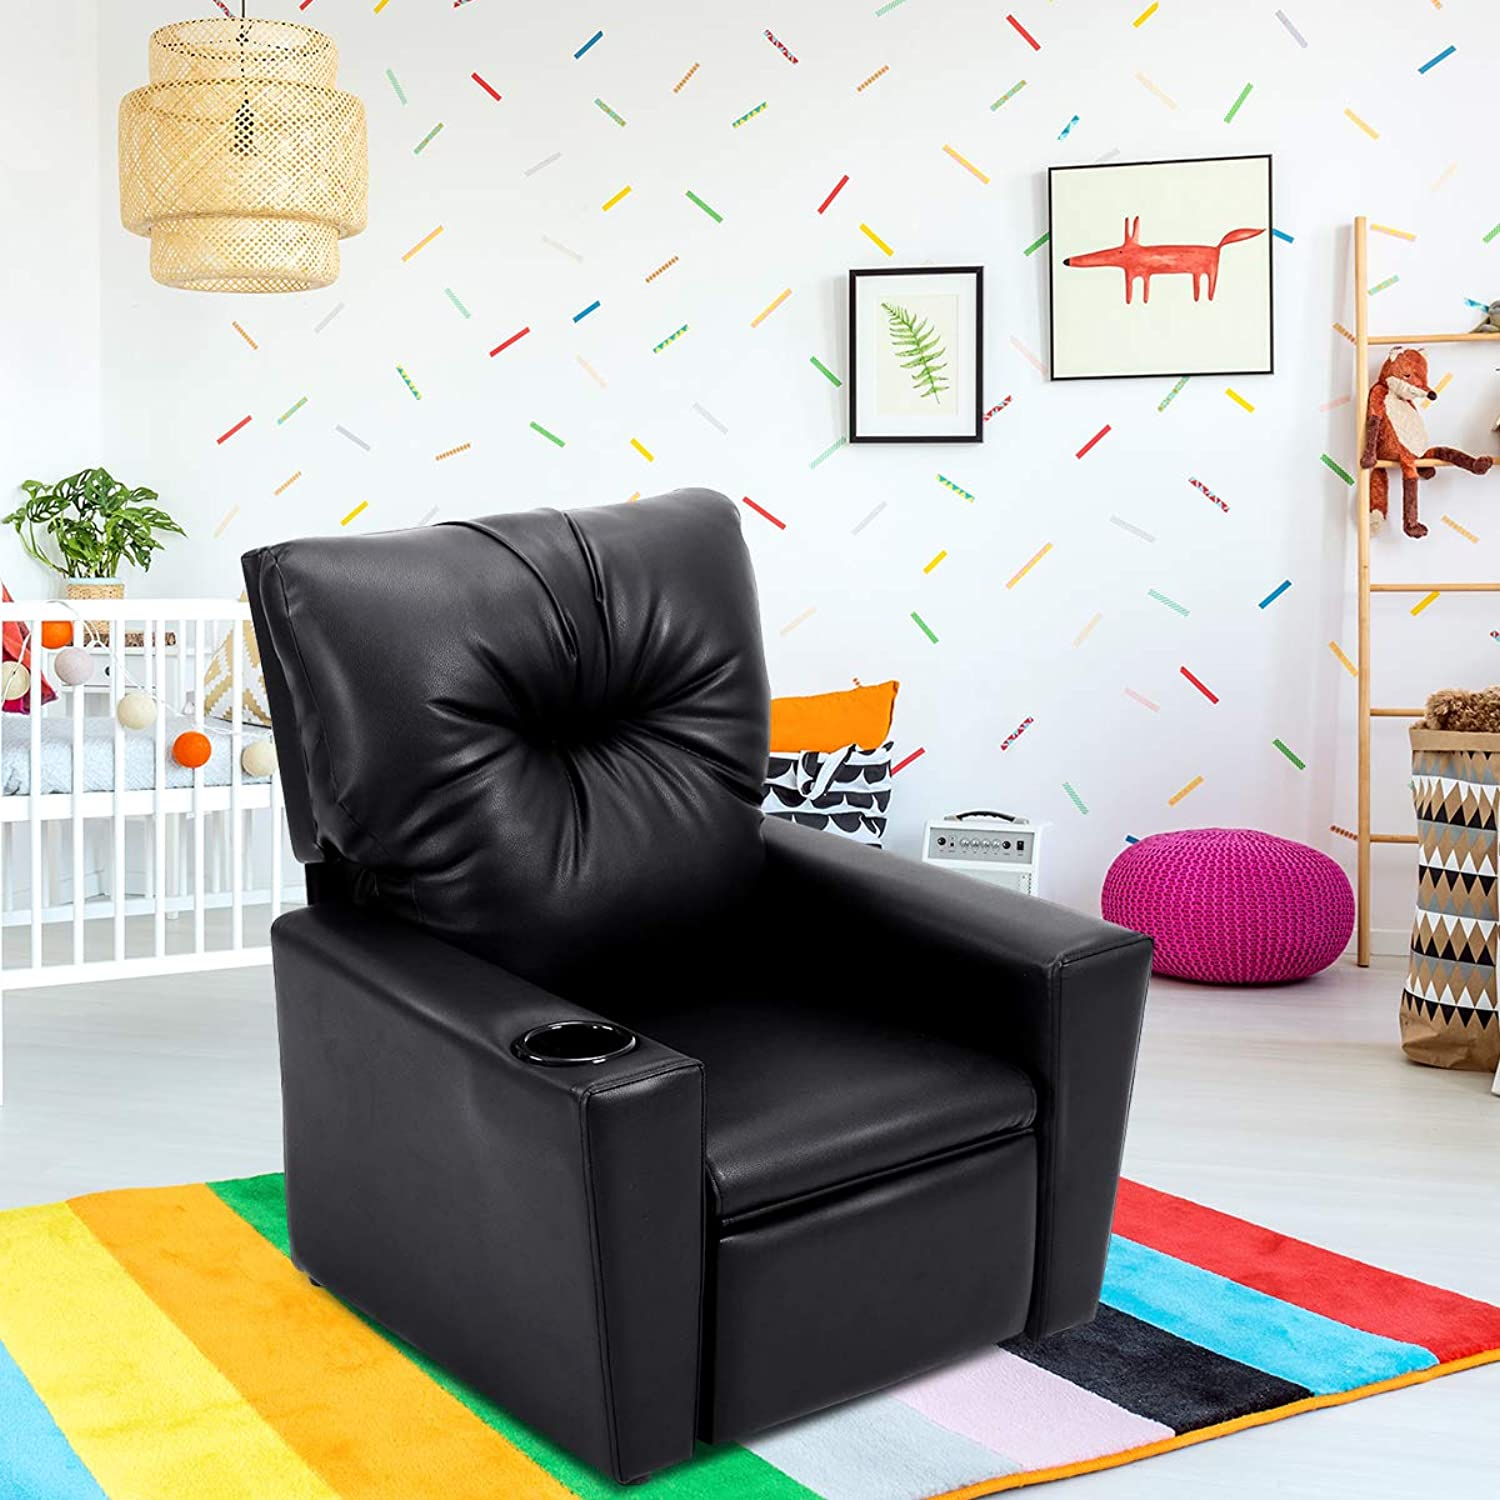 Costzon Kids Recliner Chair Manual PU Leather Reclining Seat w Cup Holder (Black)